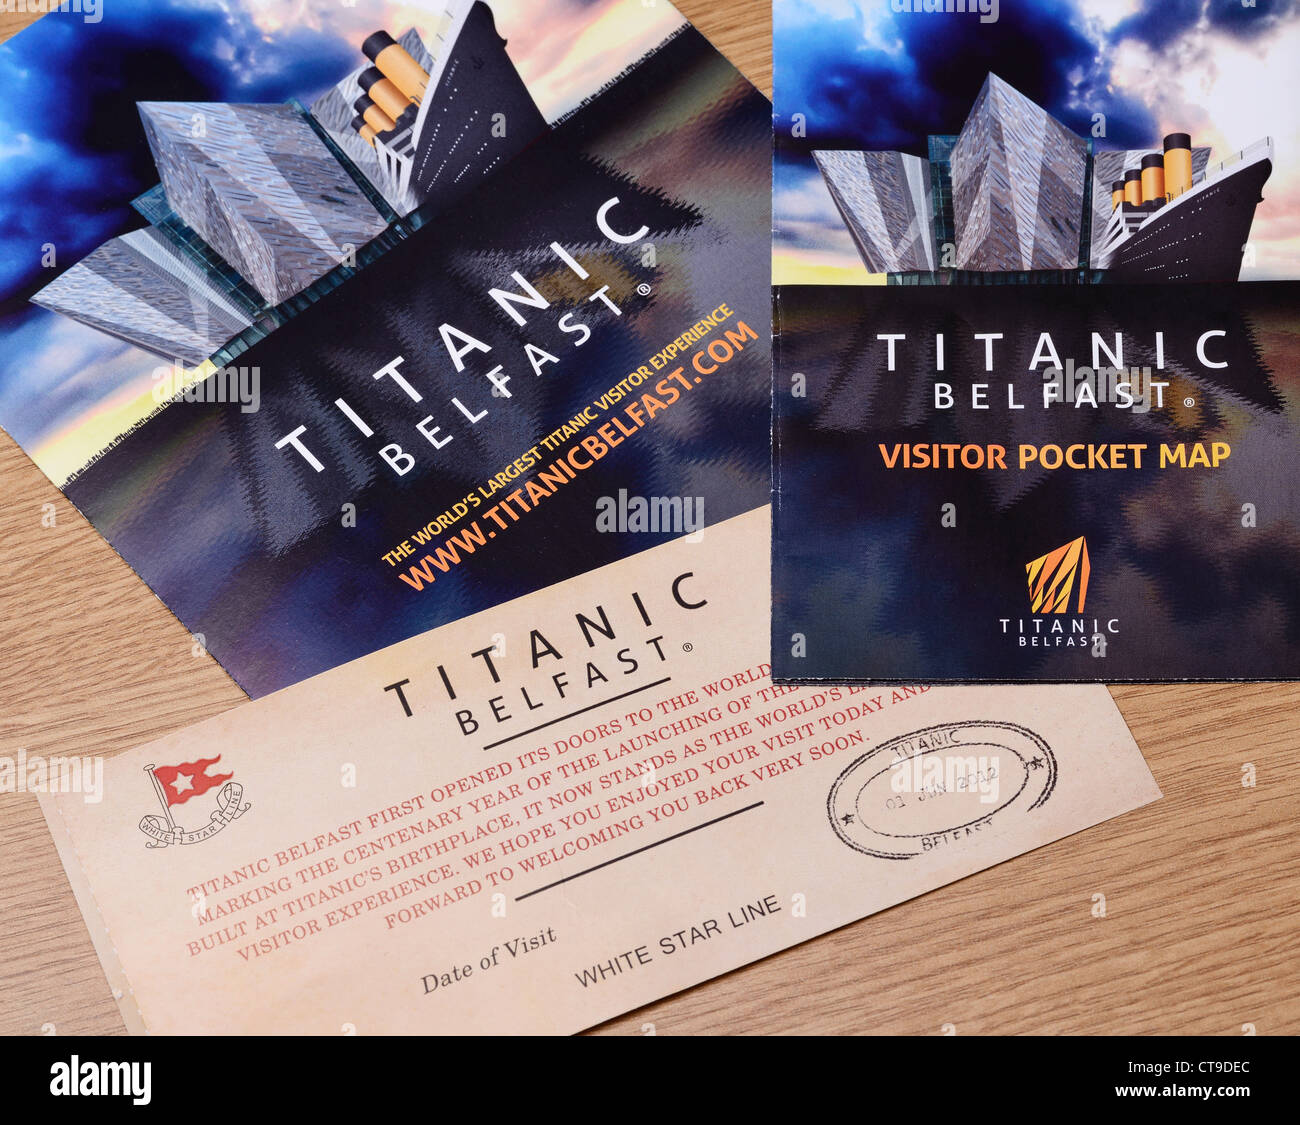 Belfast Titanic Exhibition leaflet and ticket - Stock Image